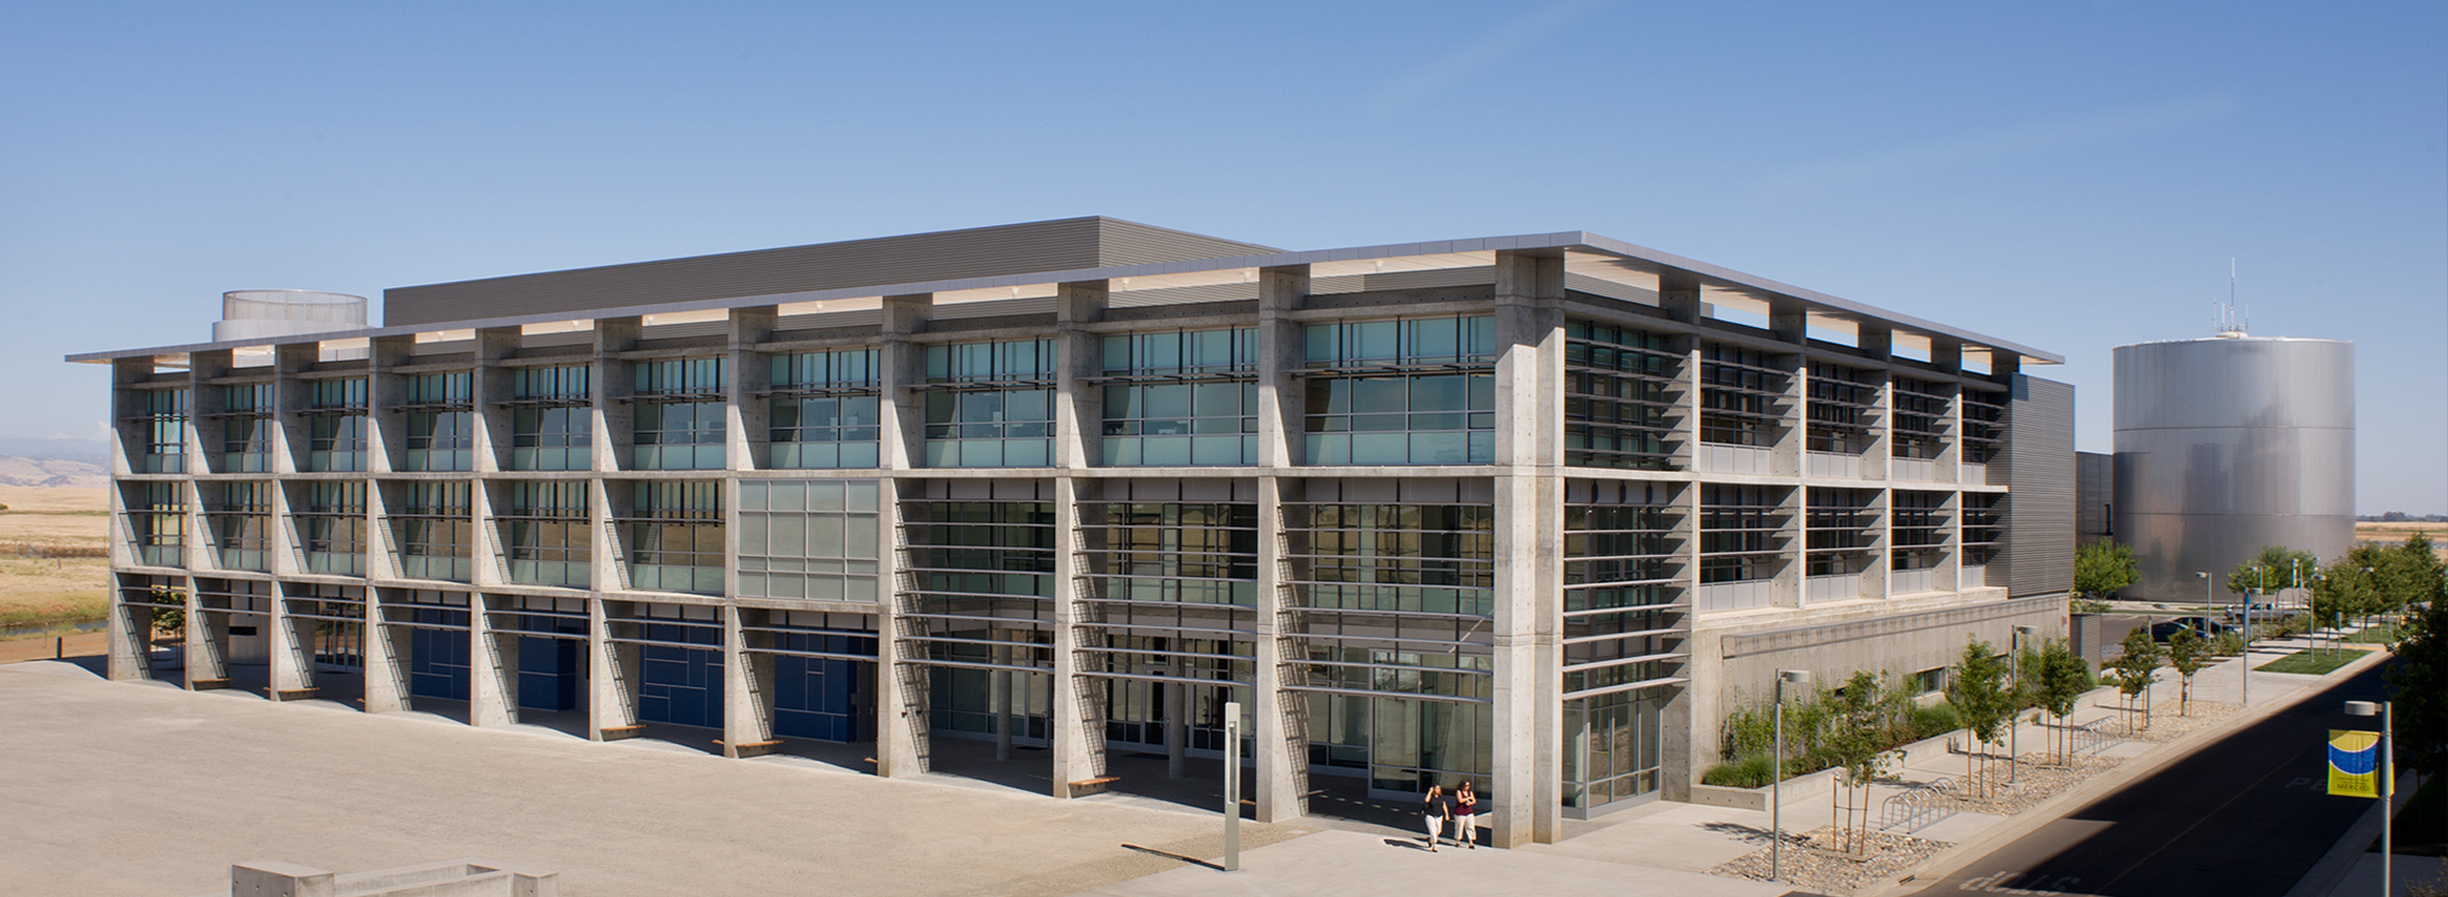 UC Merced Social Sciences and Management Building Exterior